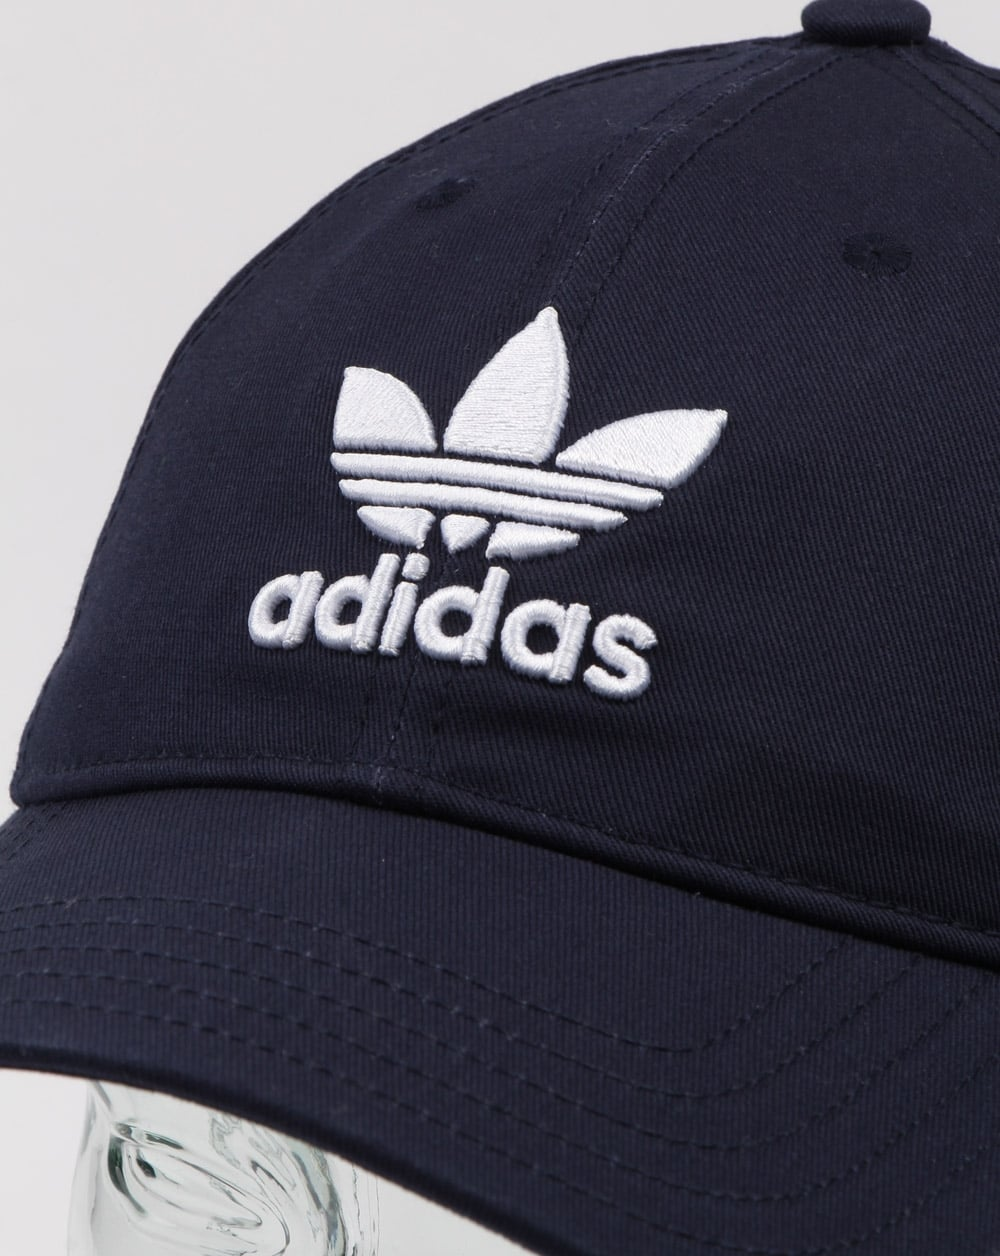 Adidas Originals Trefoil Cap Navy white 9dc33aaaed3e